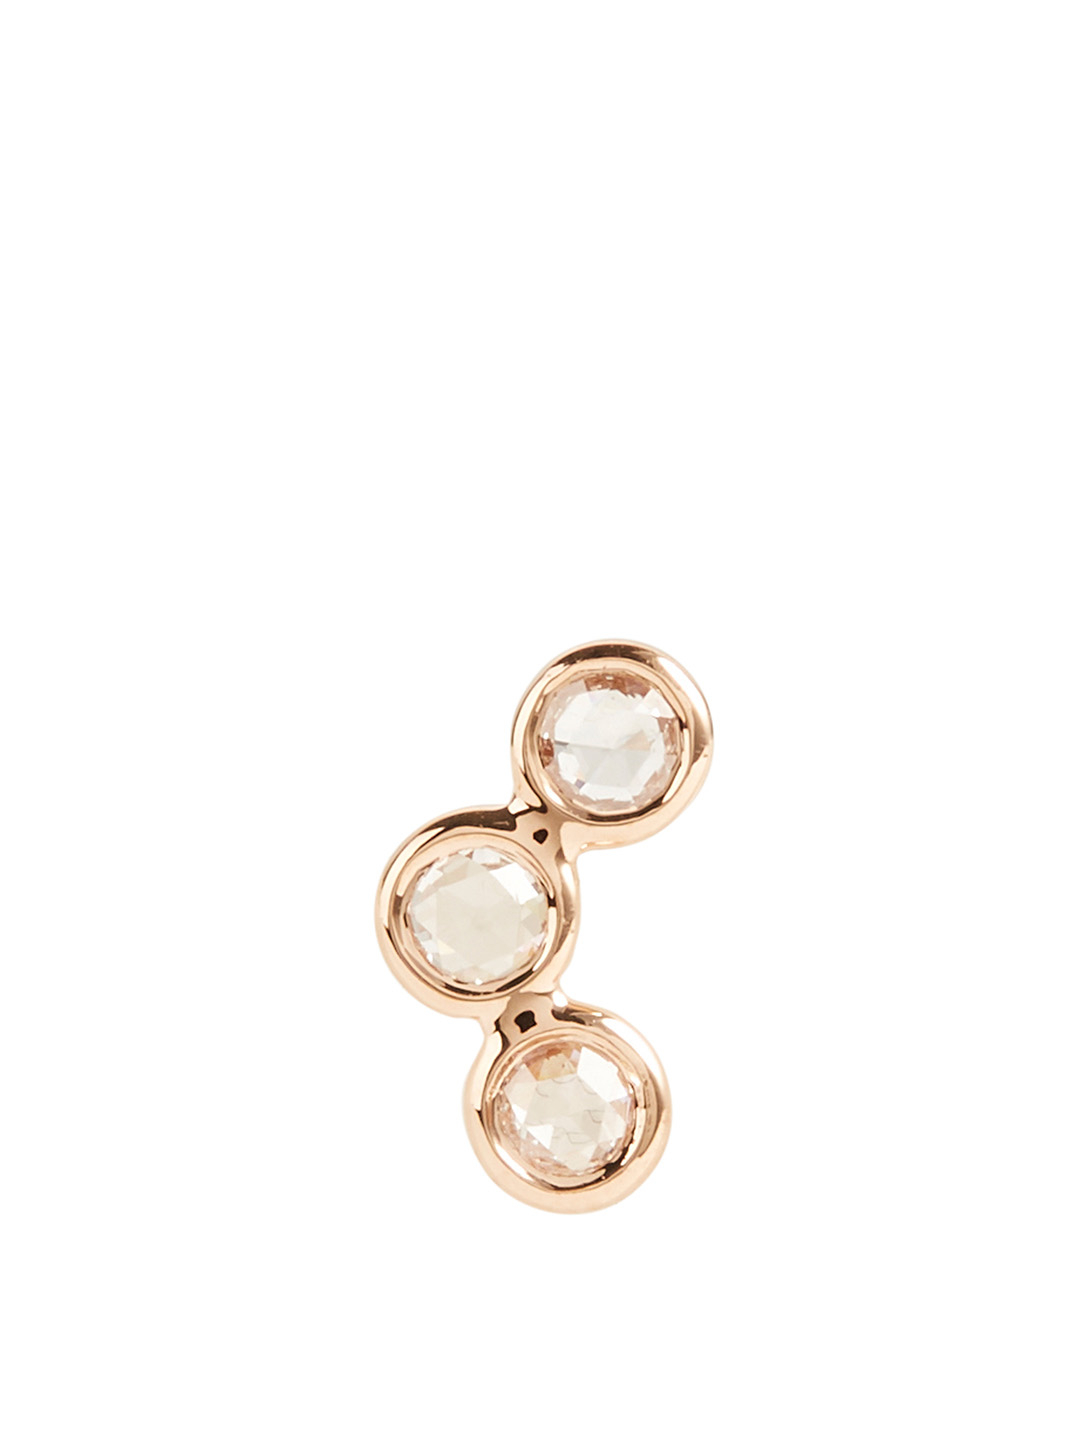 LITO 3D 18K Rose Gold Curved Earring With Diamonds Women's Metallic